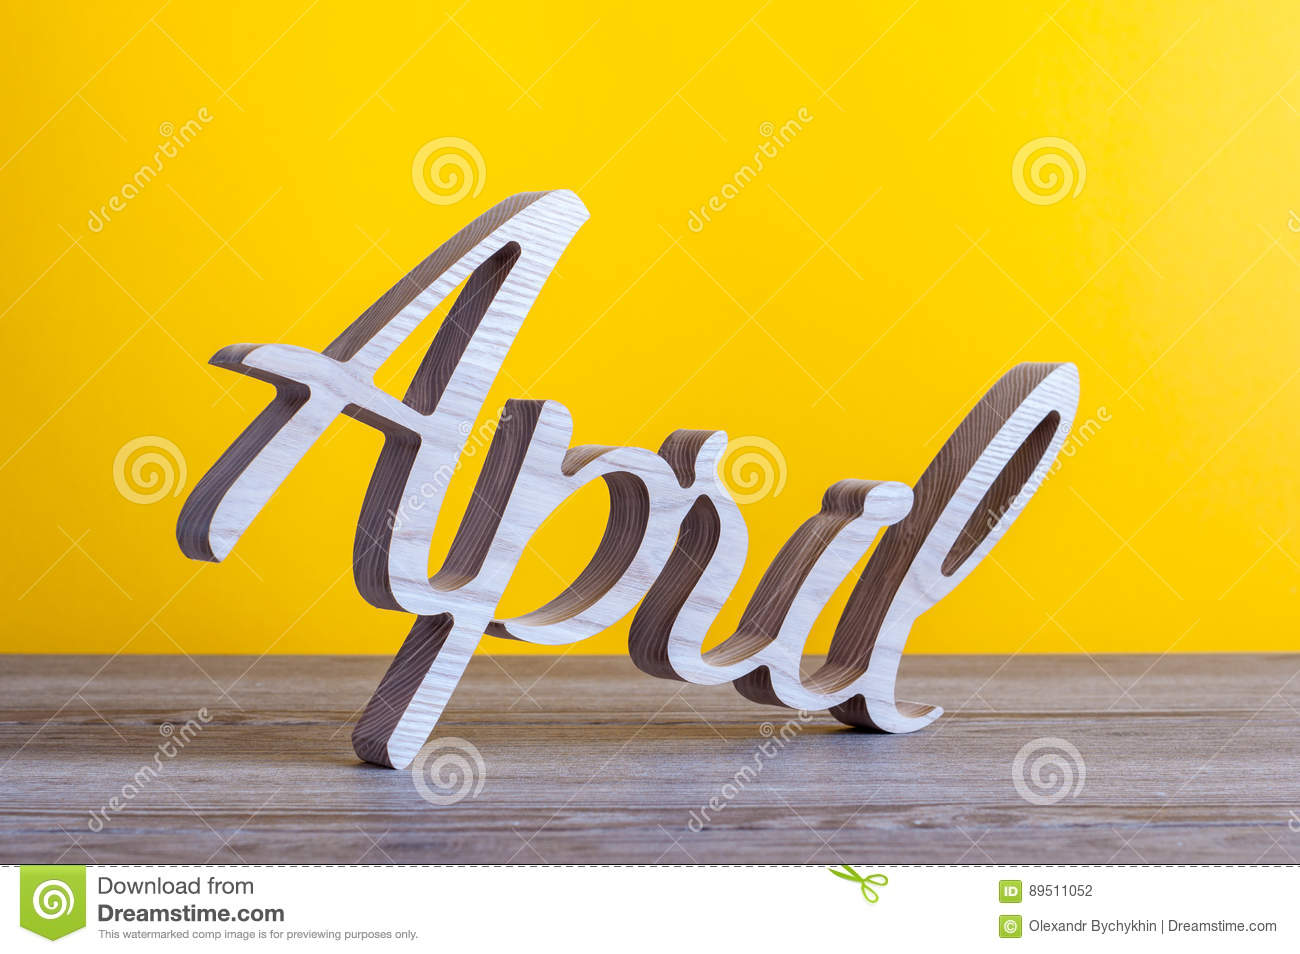 April Carved Text Of Wooden At Light Yellow Background Second